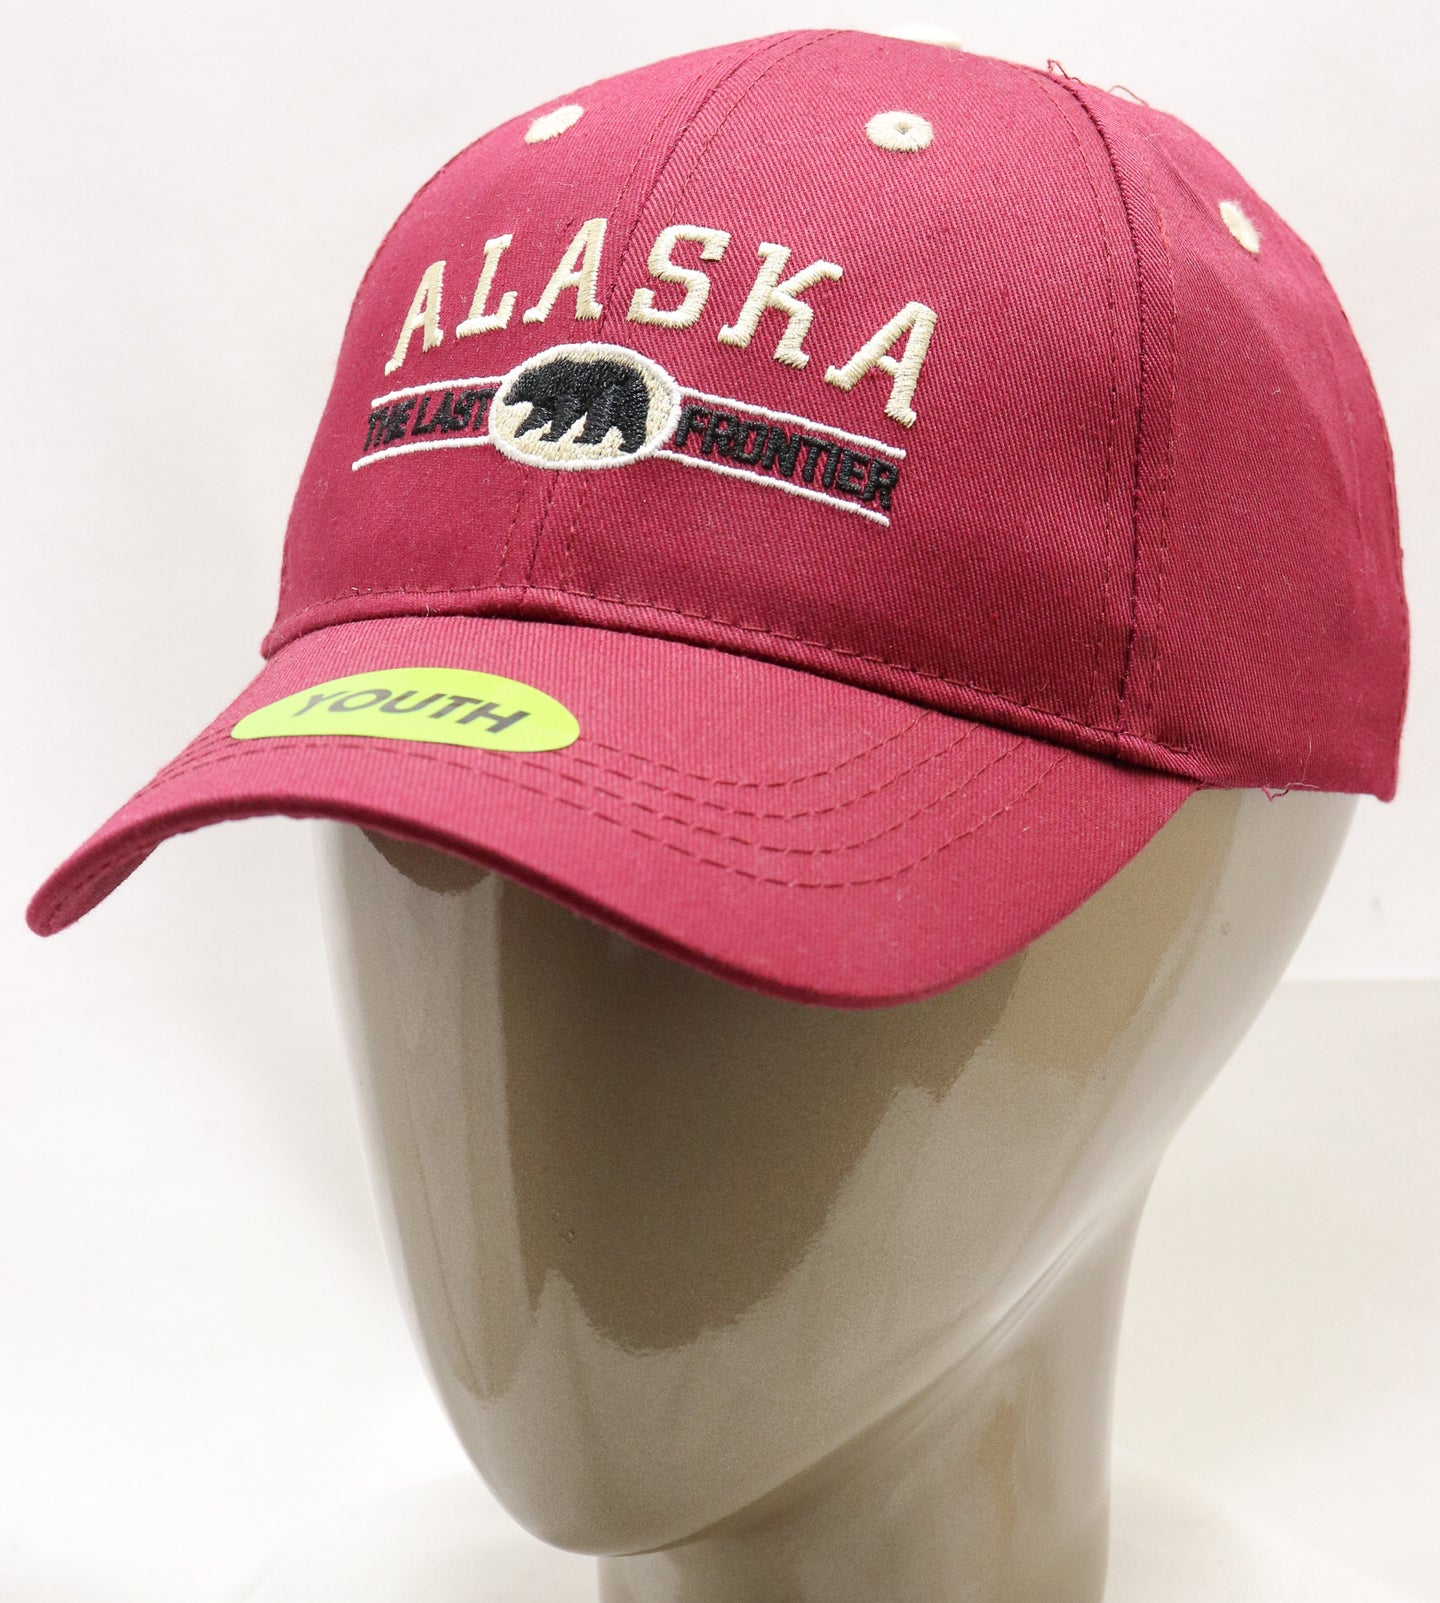 MAROON AK LAST FRONTIER ADJUSTABLE YOUTH BASEBALL HAT